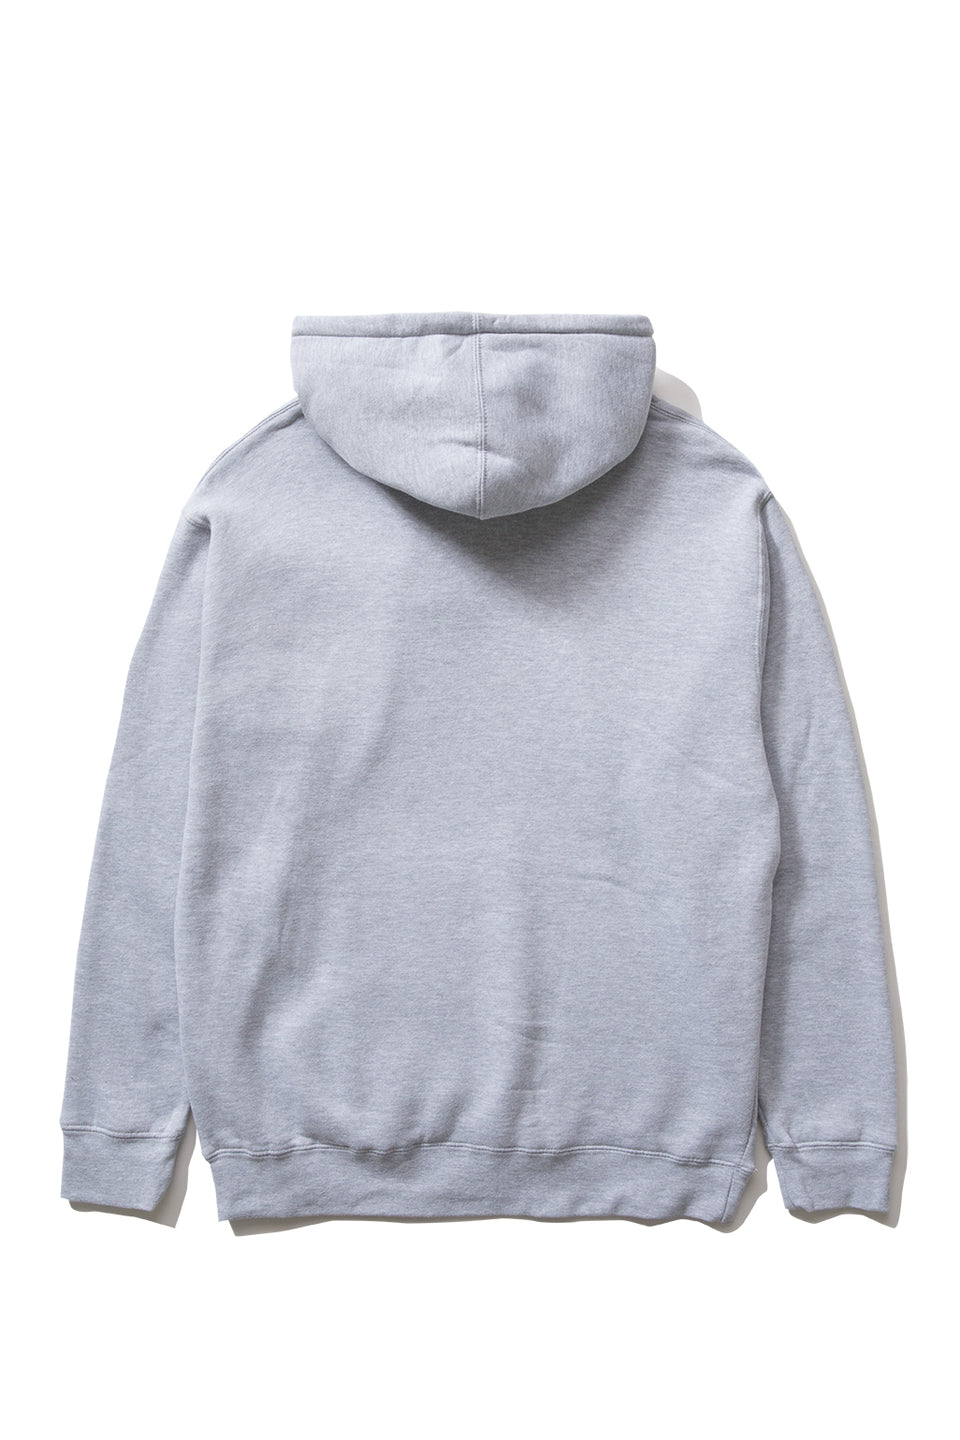 6a4bdc46 Forever Slant Pullover Hoodie Forever Slant Pullover Hoodie